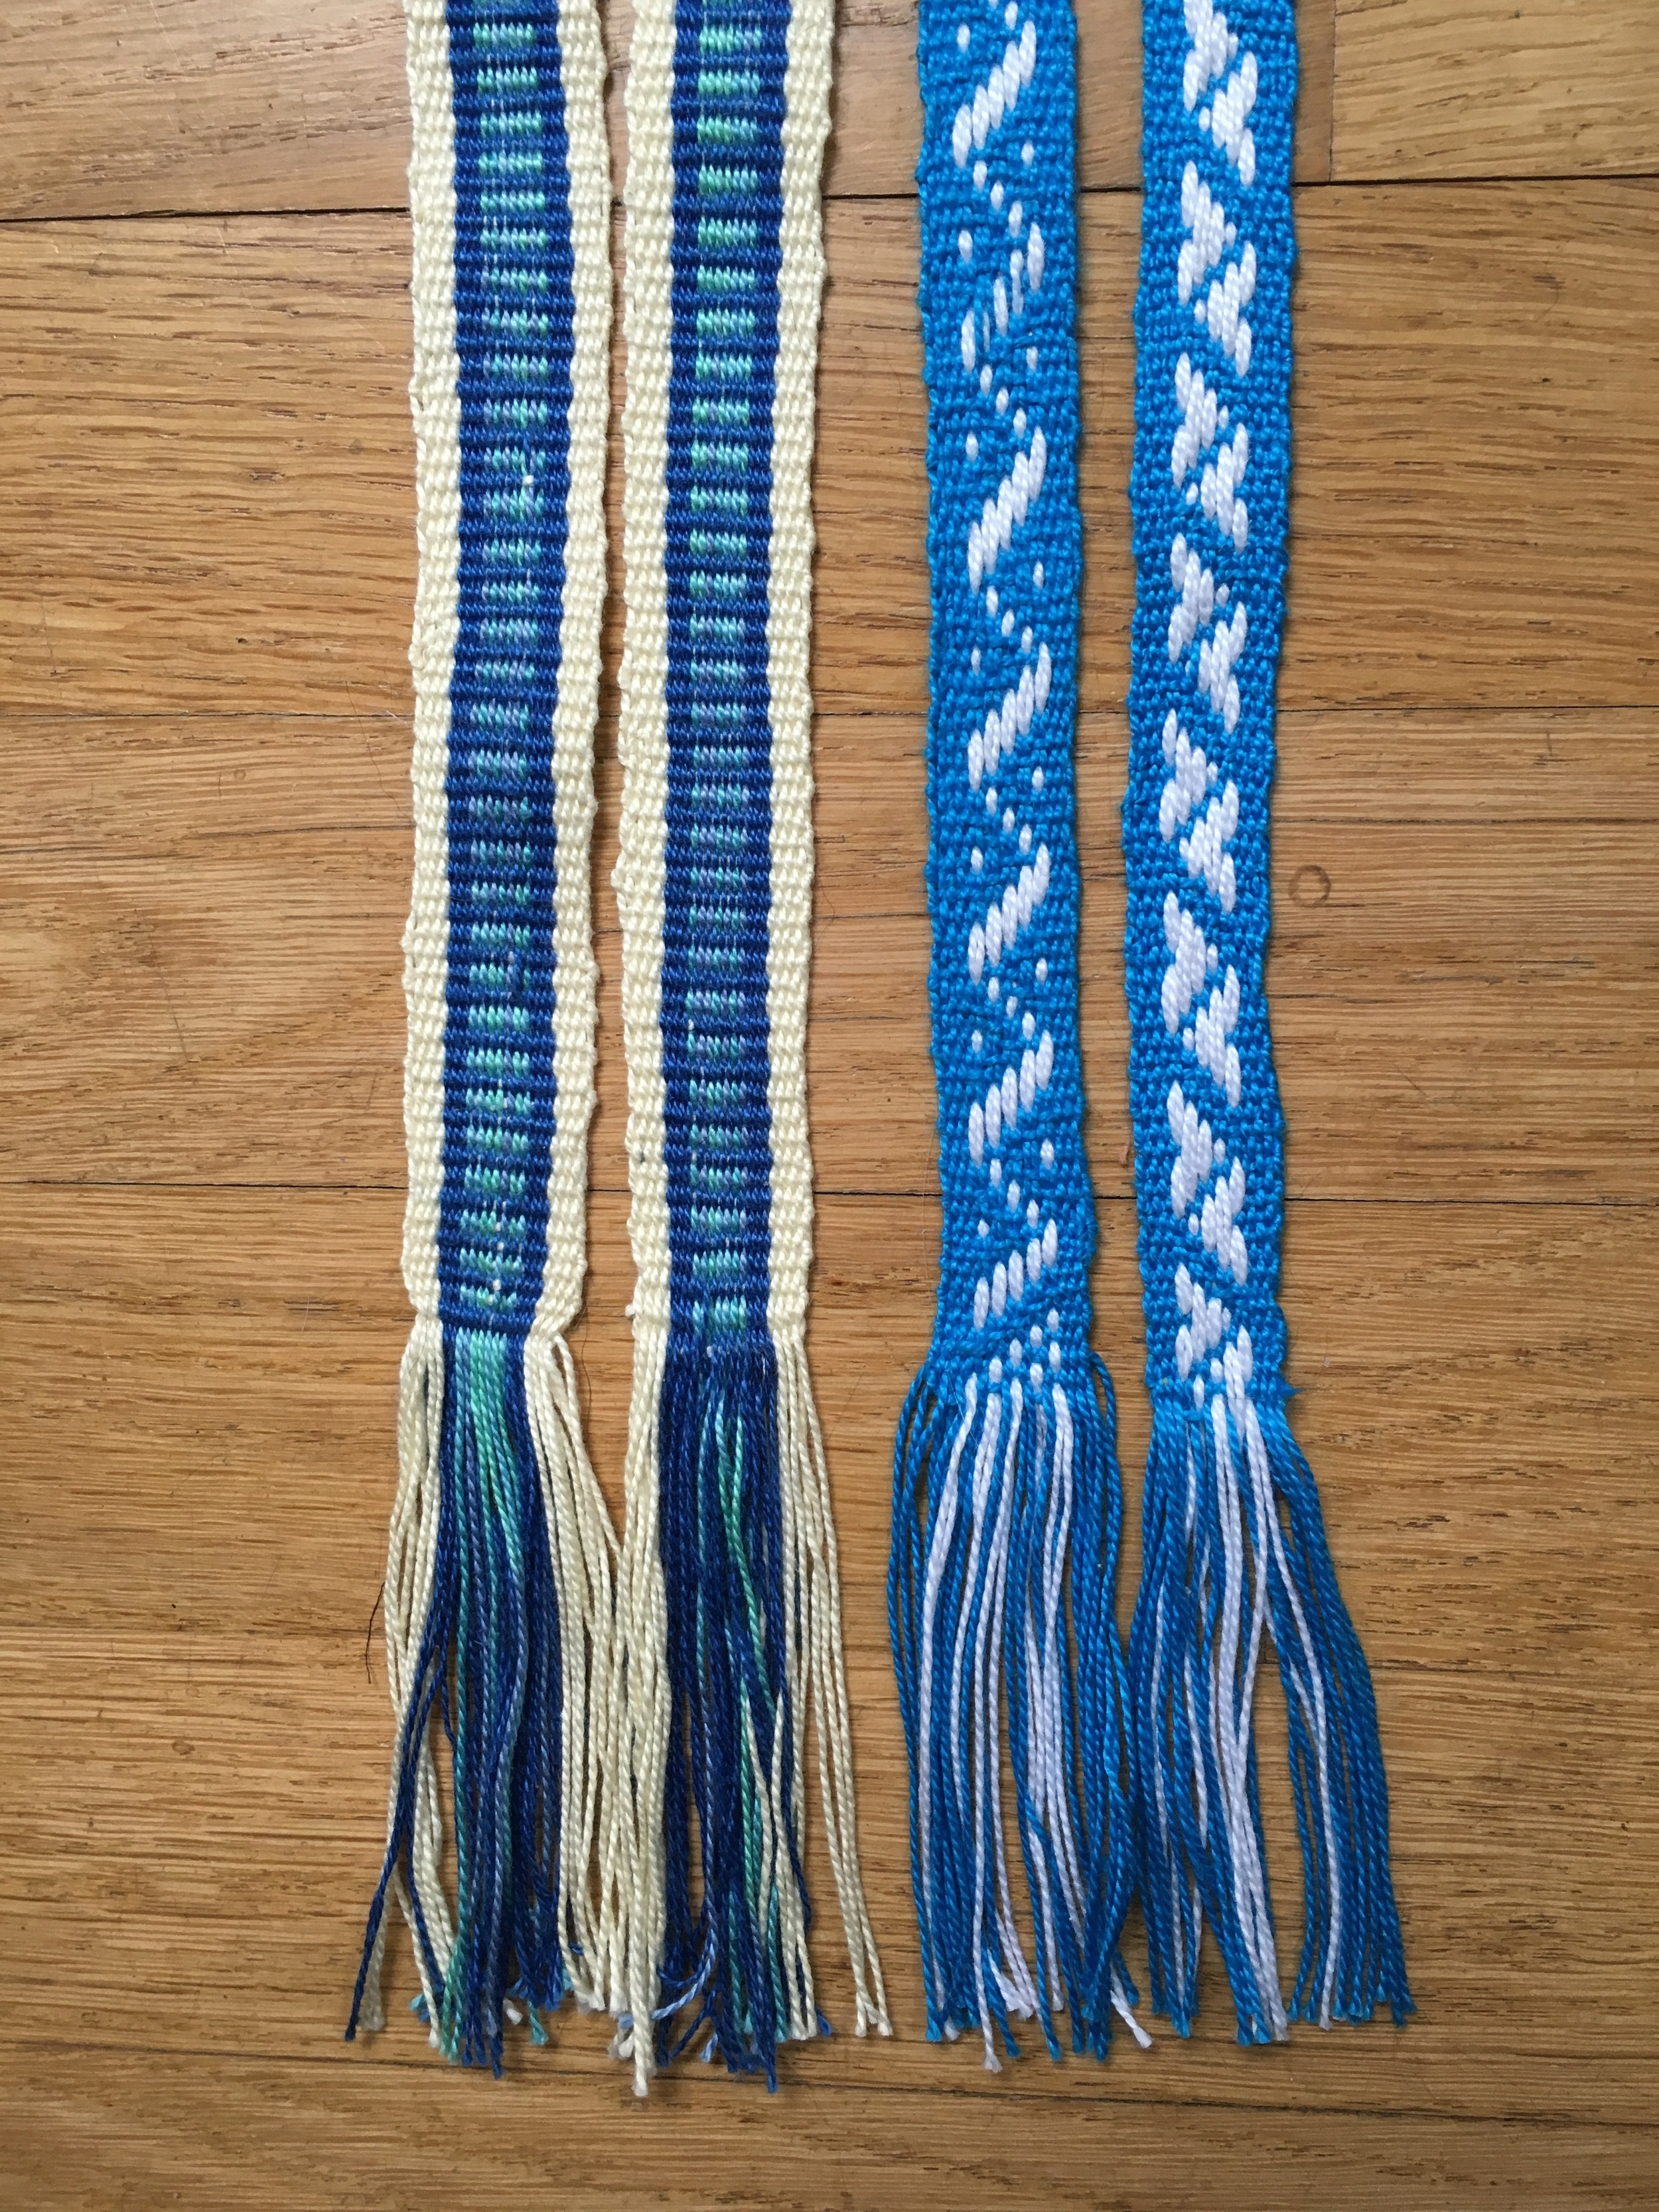 Weaving Blue-teal band and Blue Baltic.jpg